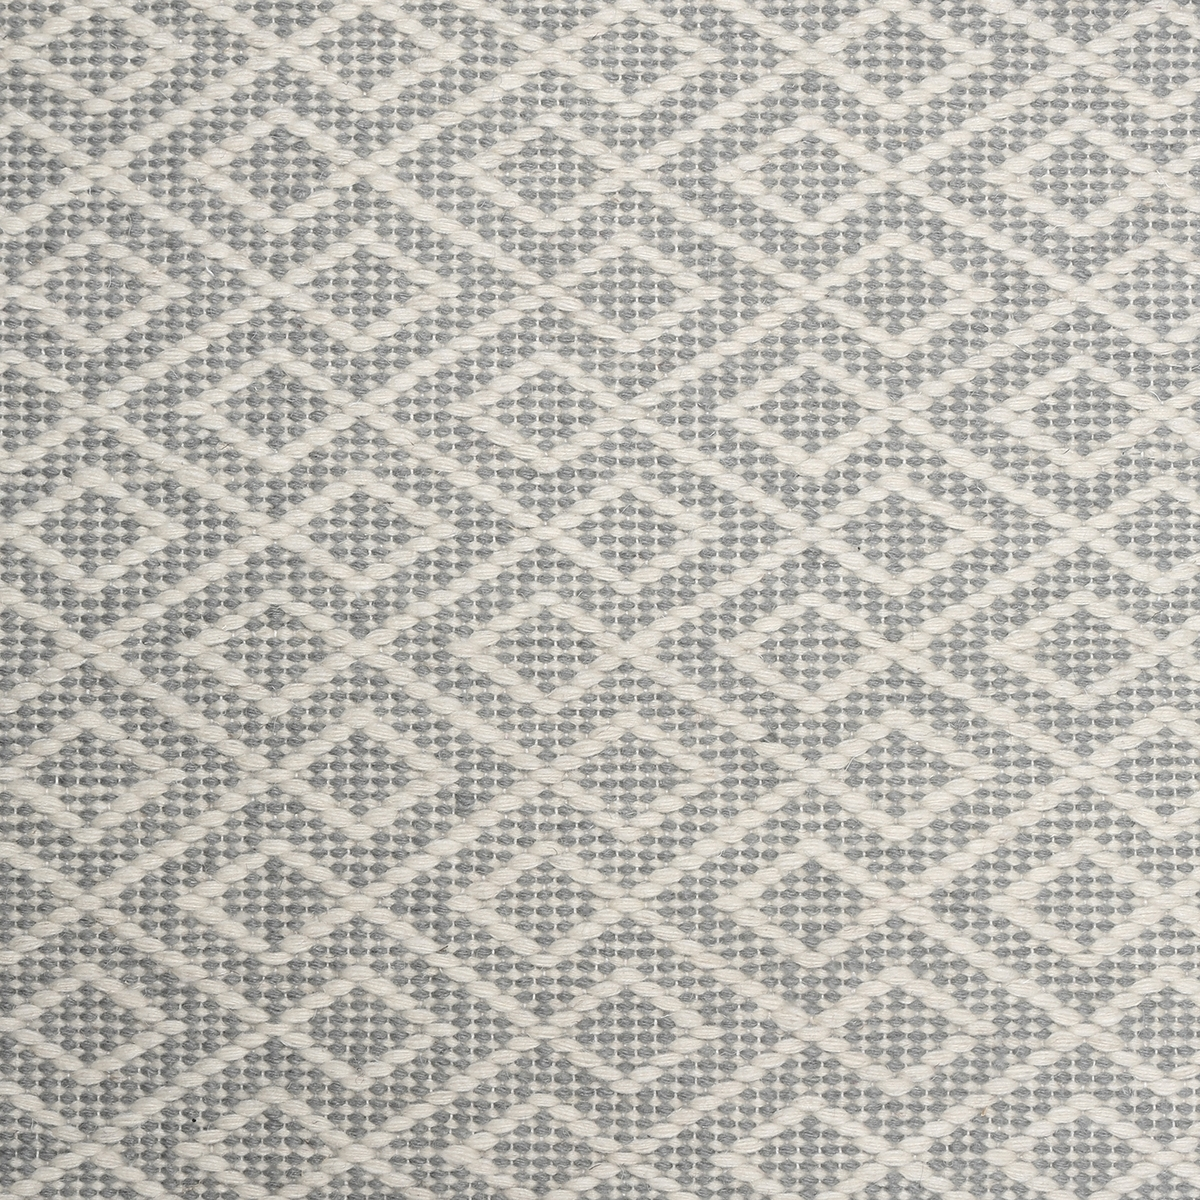 Geometric Carpet Patterns For Geometric Carpet Patterns (View 7 of 15)